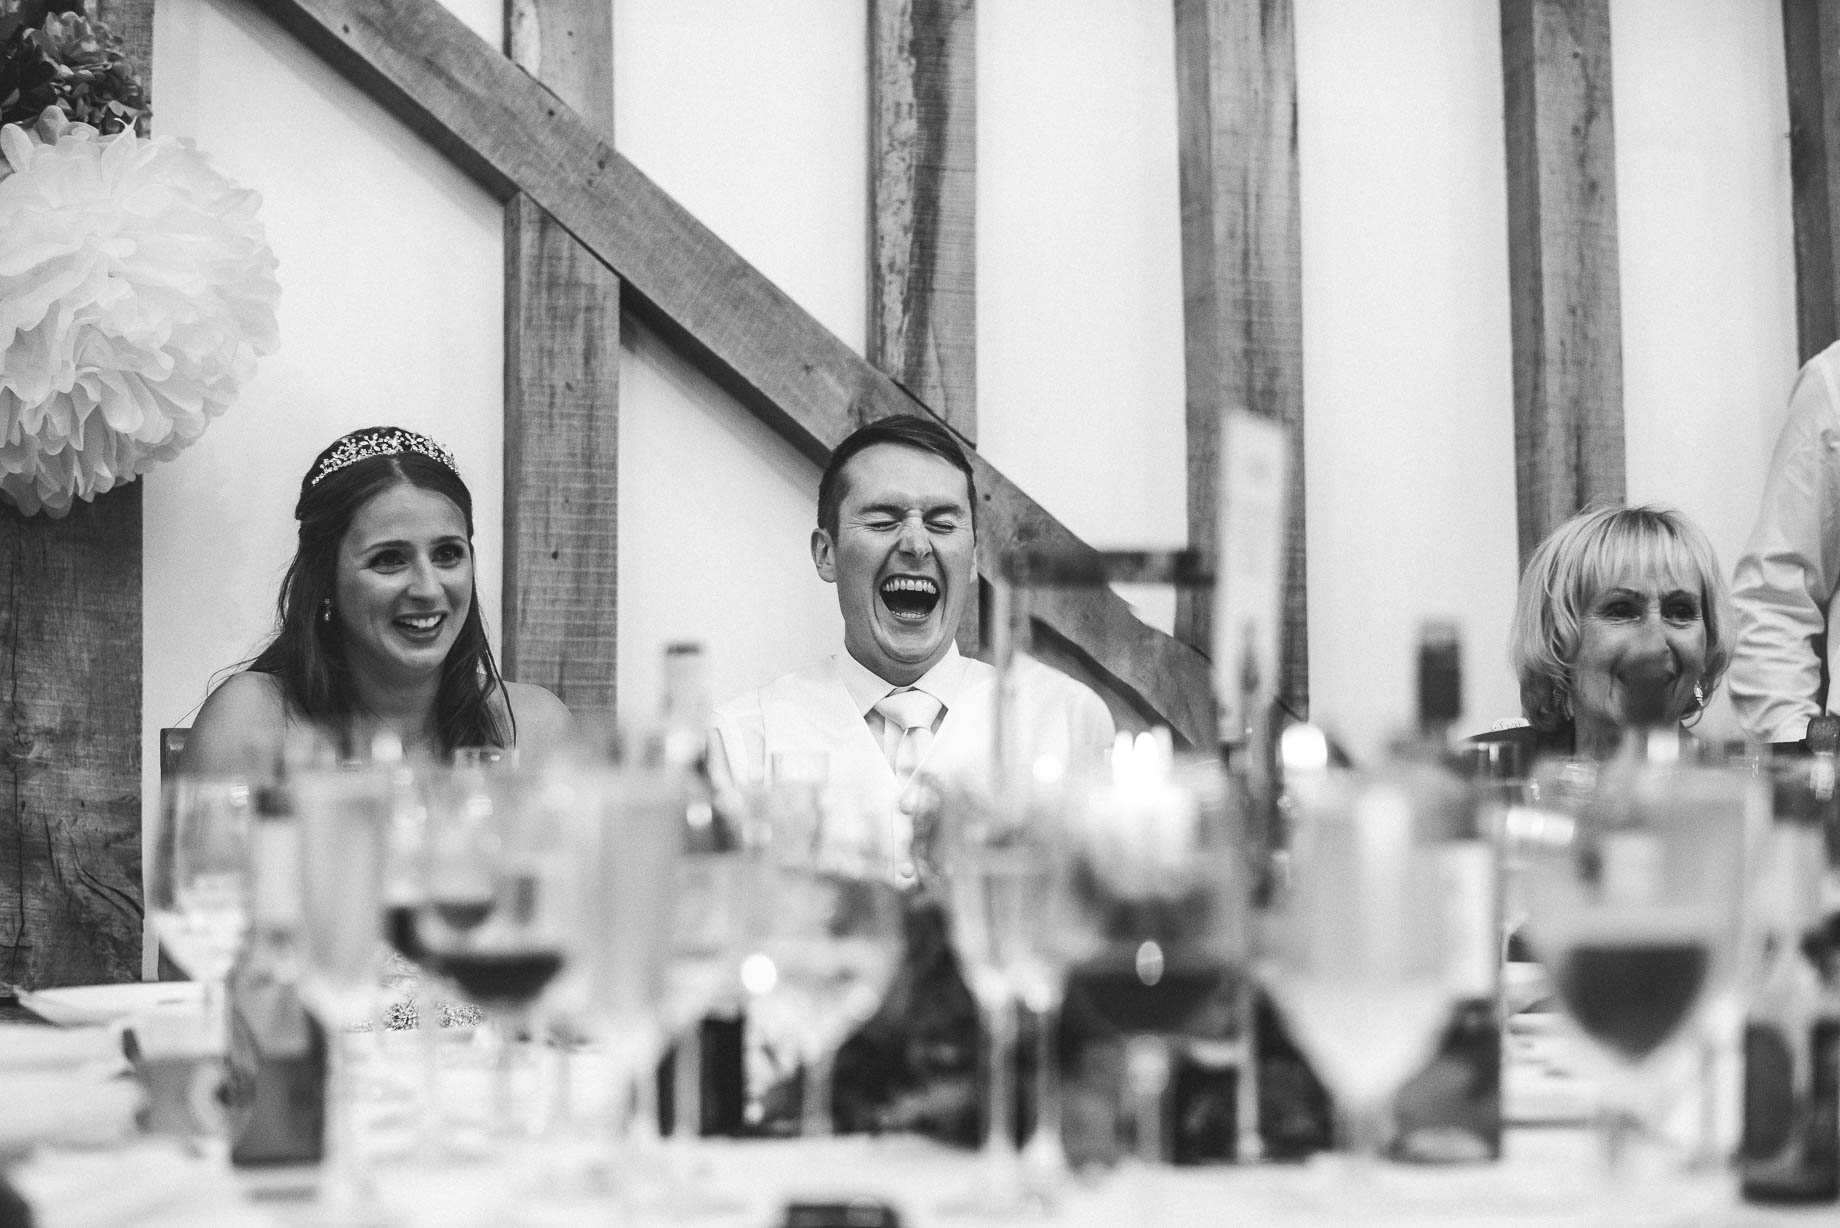 Gate Street Barn wedding photography - Guy Collier - Claire and Andy (132 of 192)